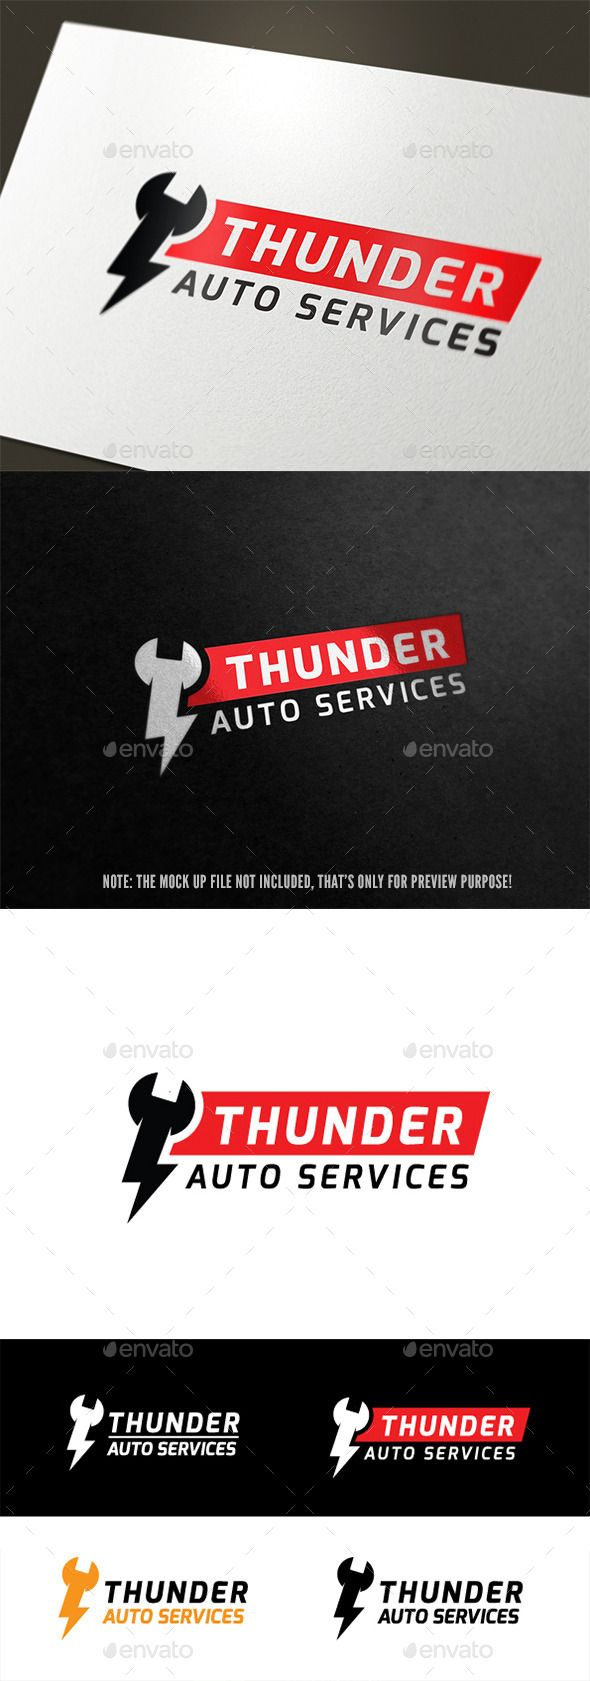 Auto Service - Logo Design Template Vector #logotype Download it here: http://graphicriver.net/item/auto-service/9542883?s_rank=950?ref=nesto